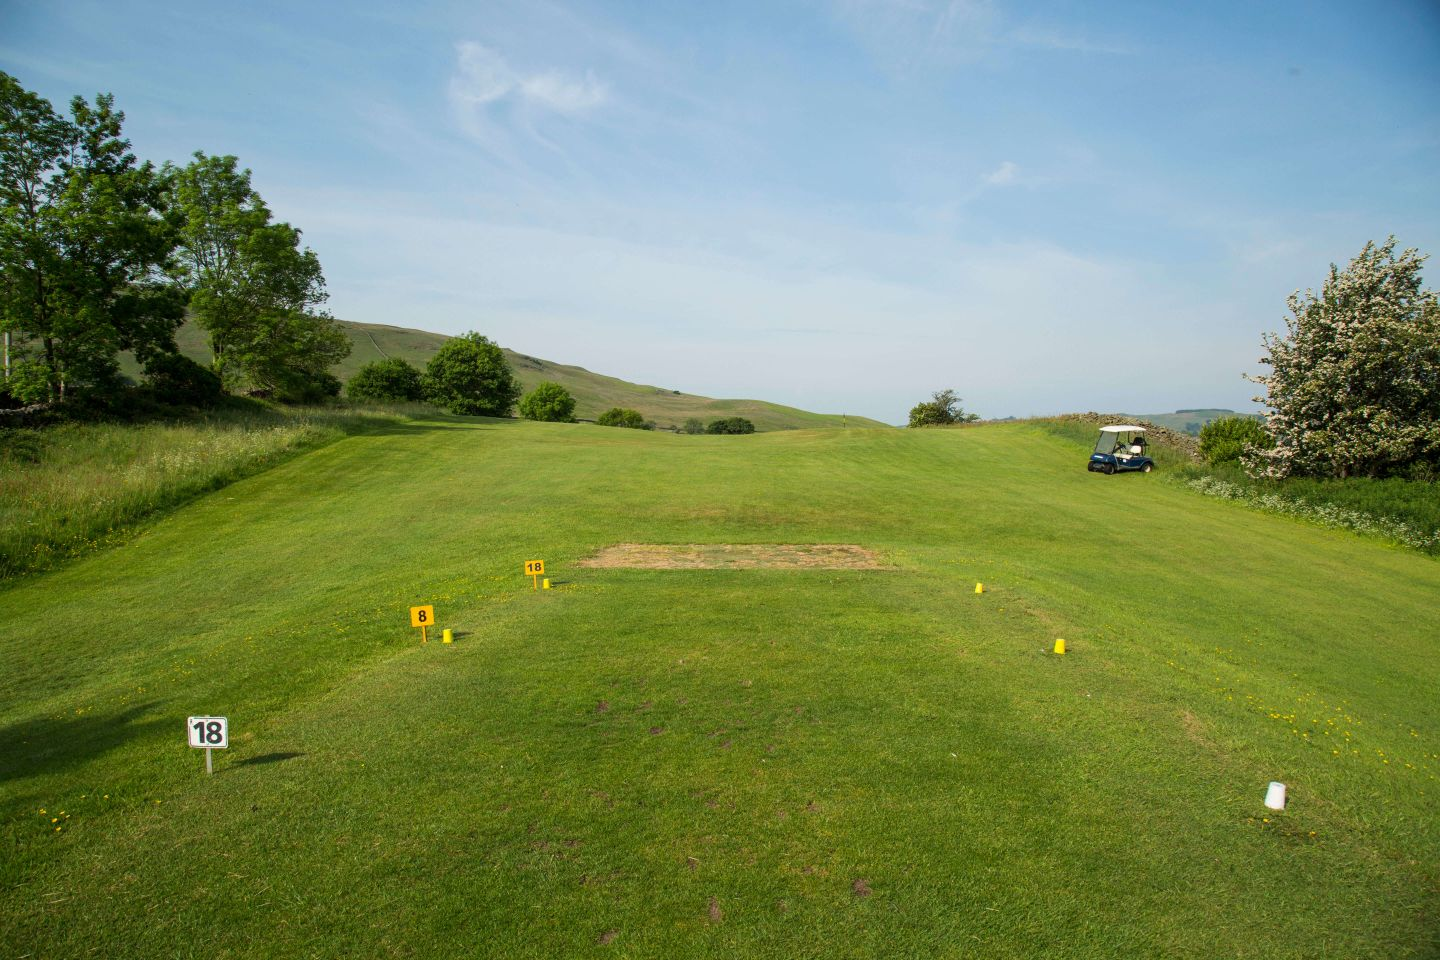 The 8th / 18th Tee